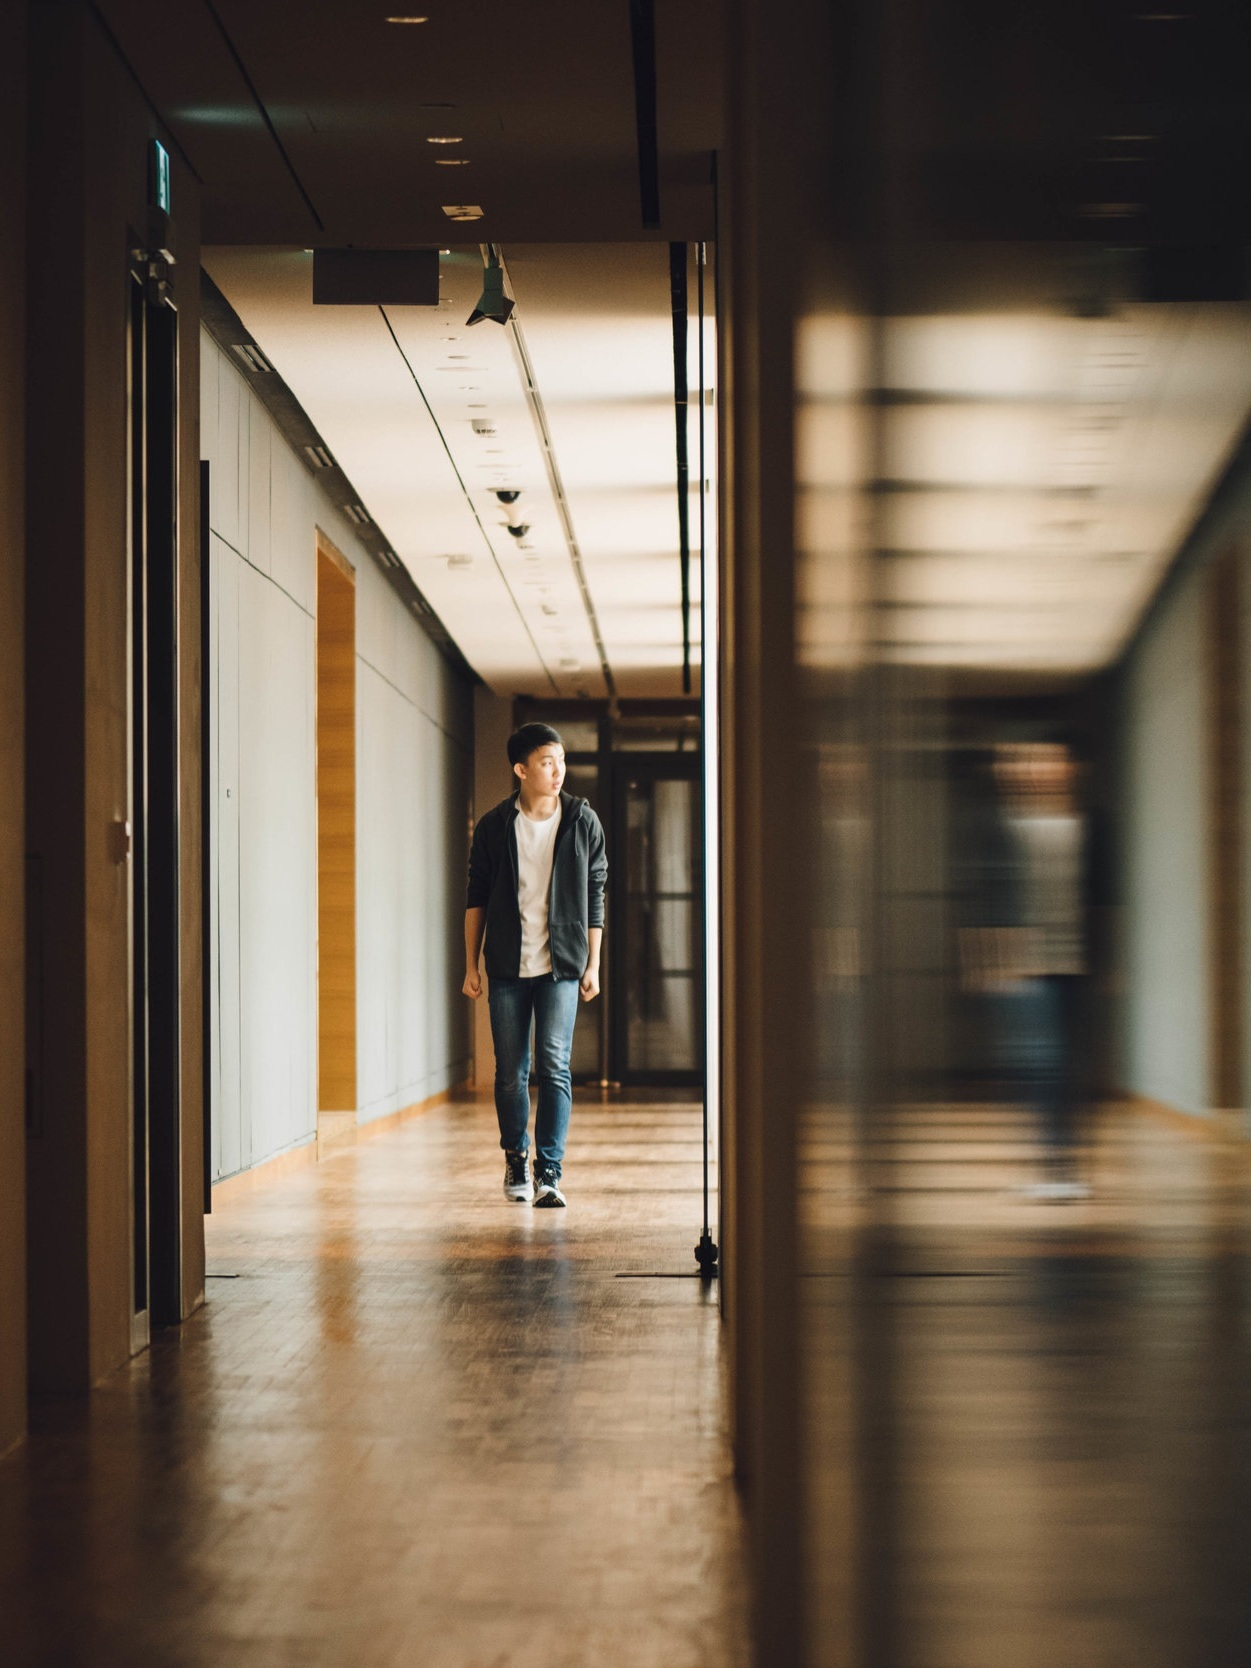 A hallway can now sense when people are nearby and automatically dim or brighten the ambient light. -